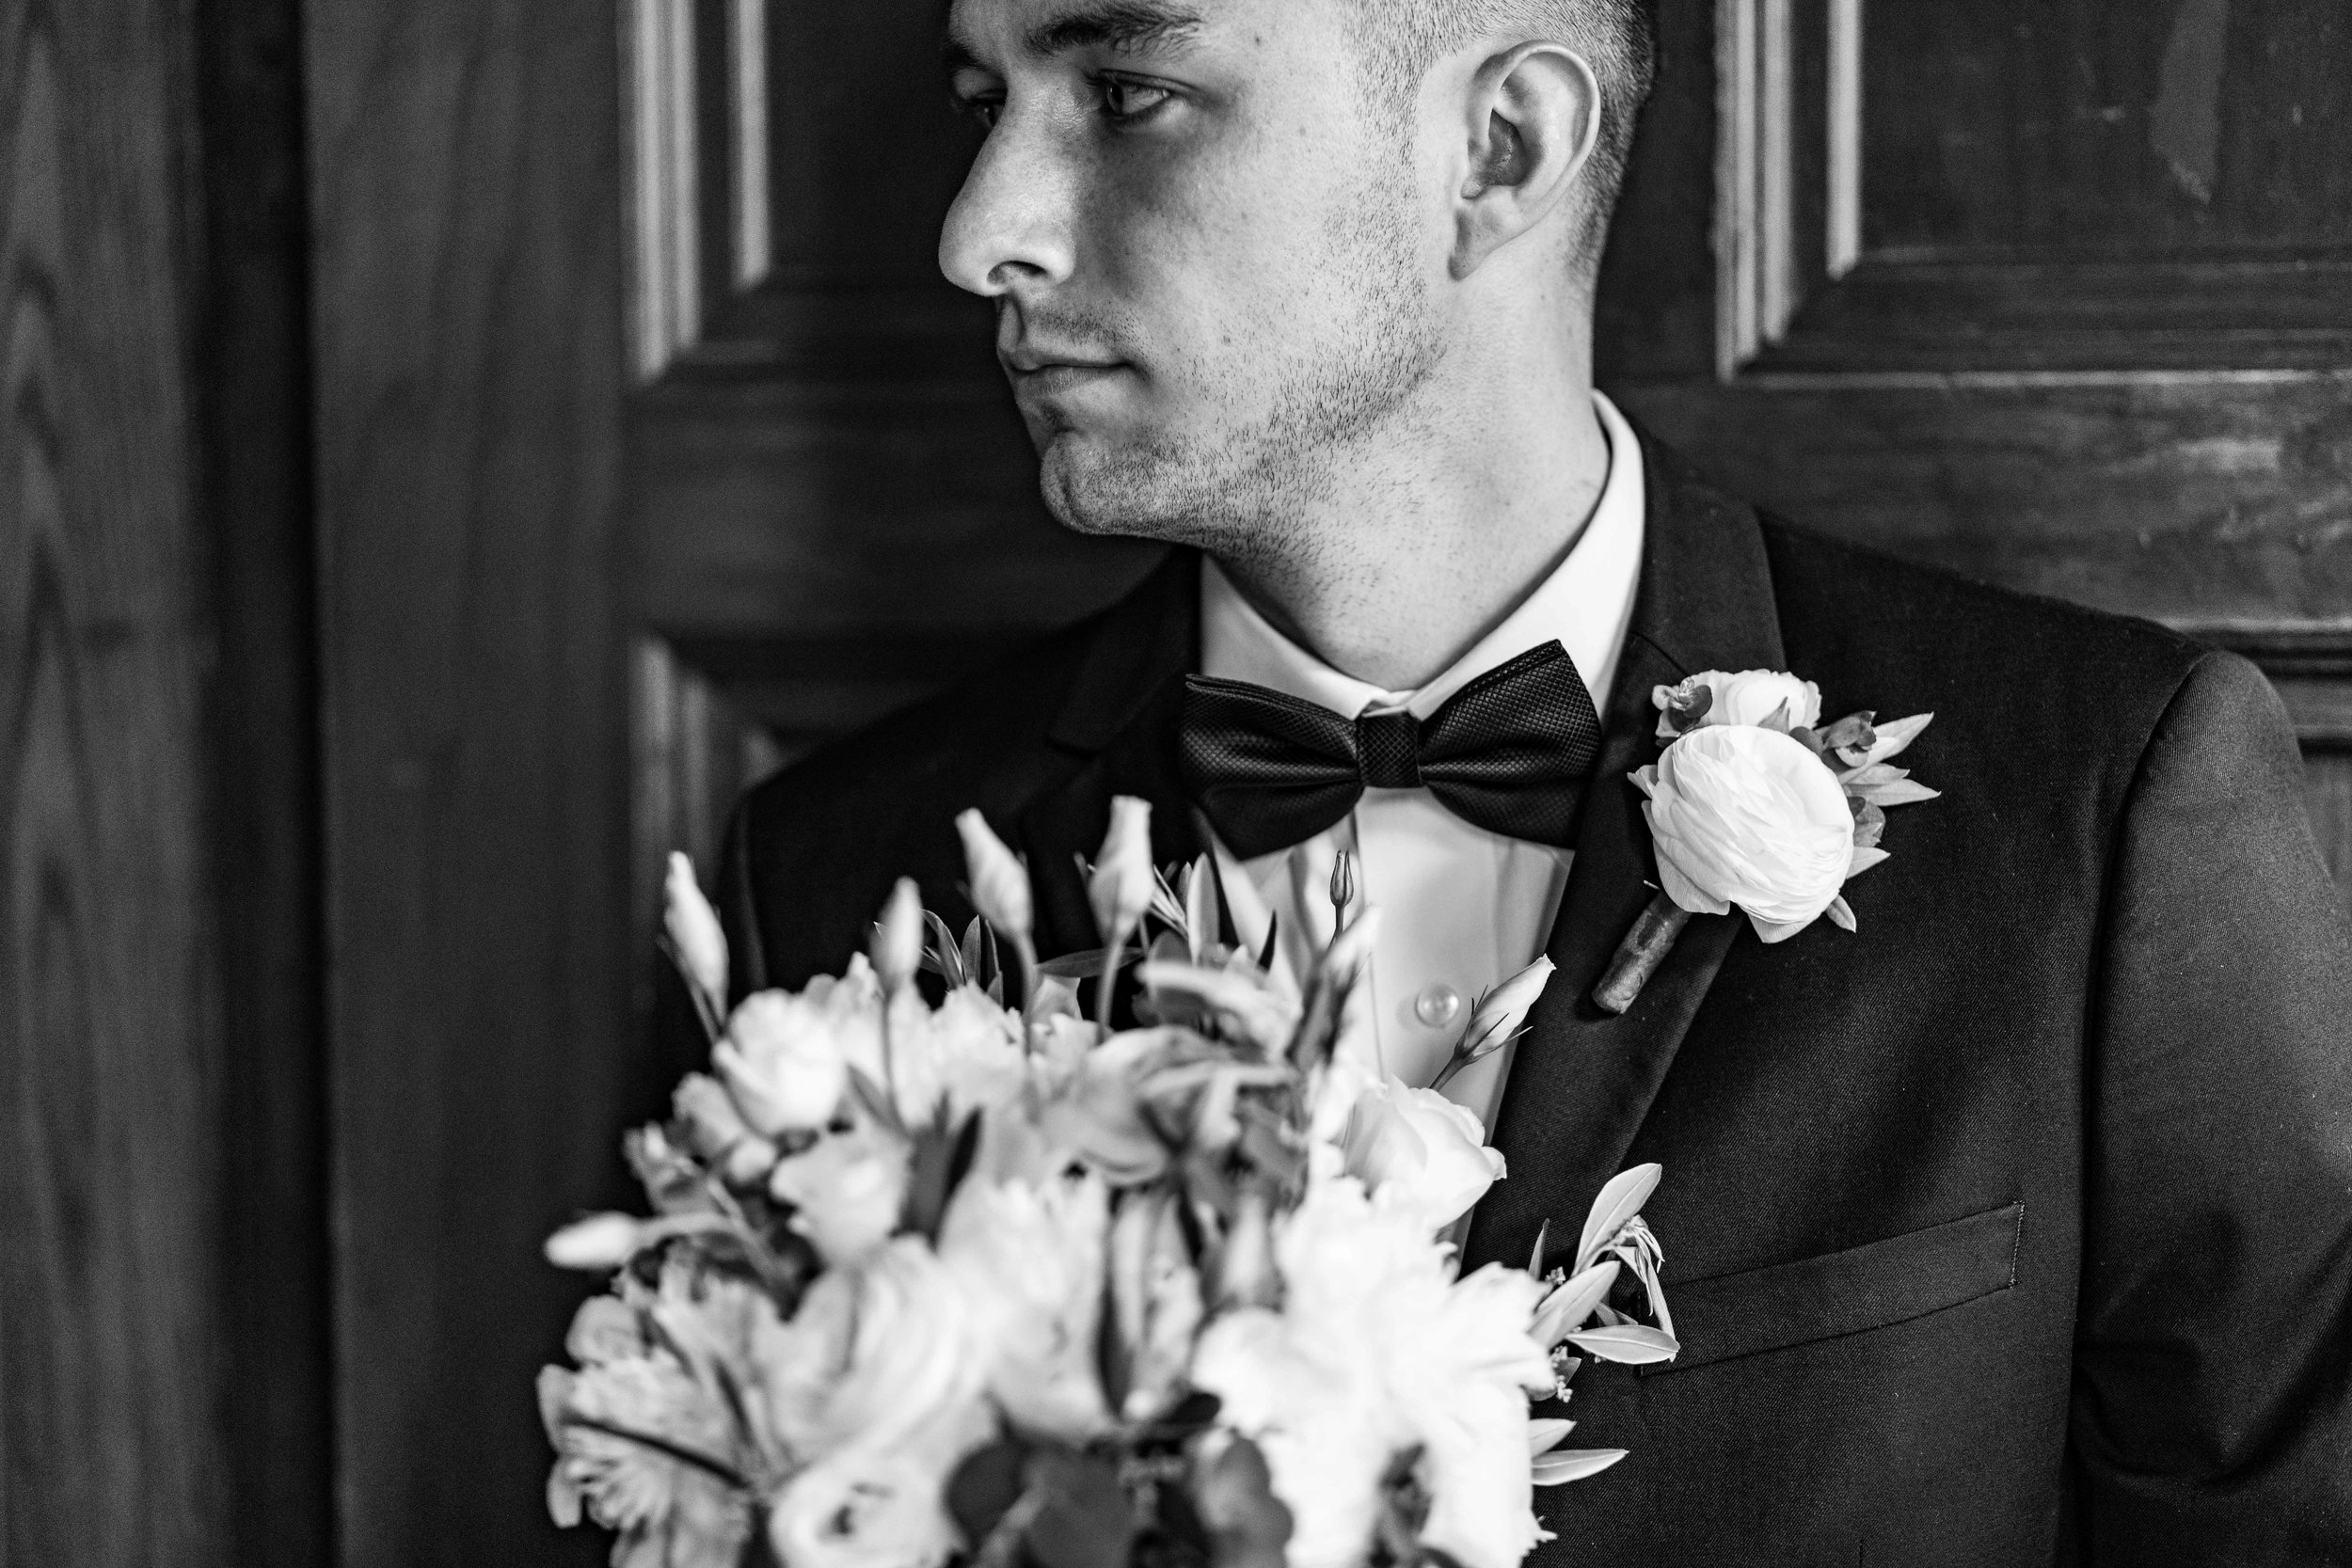 The Groom holding the brides bouquet against church door